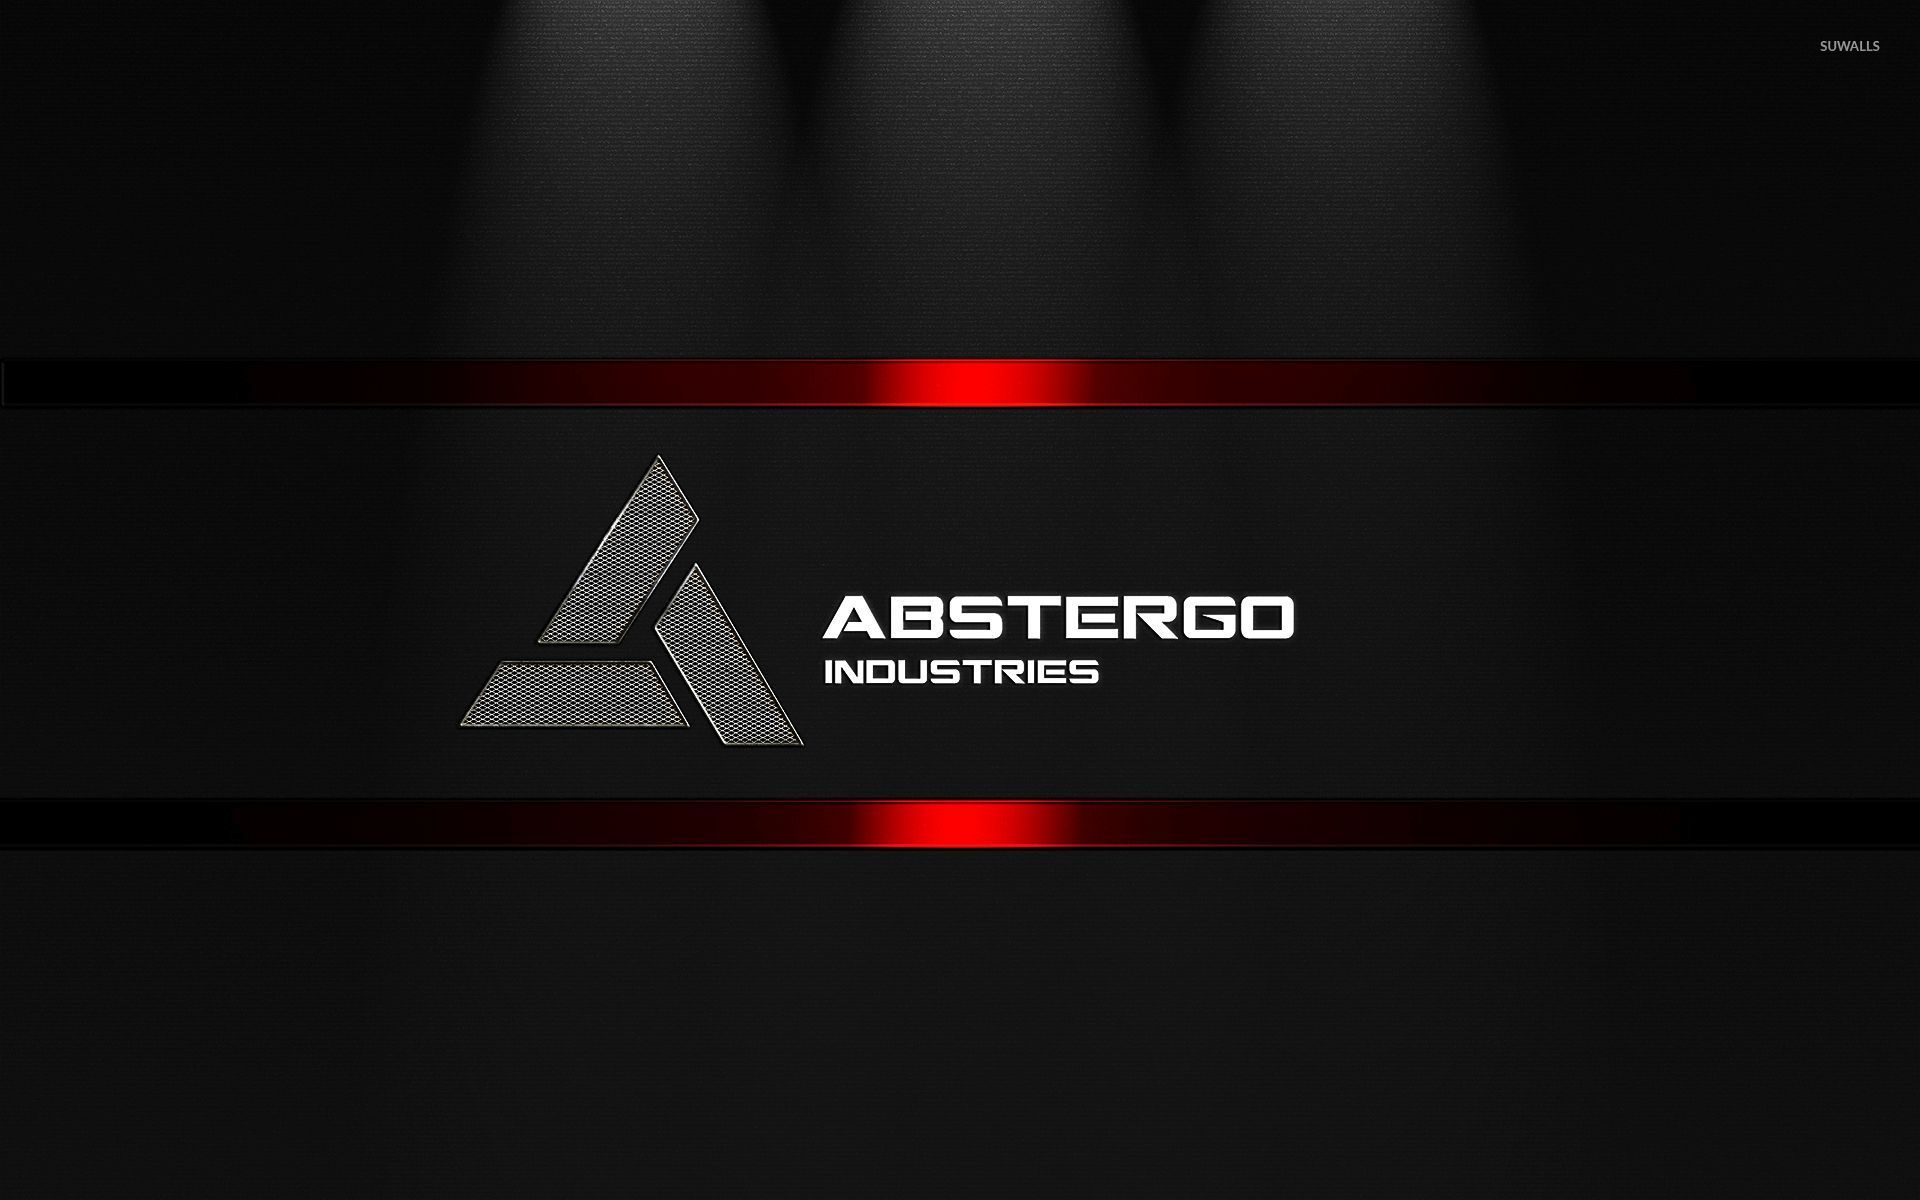 Abstergo Industries Assassins Creed Wallpaper Game